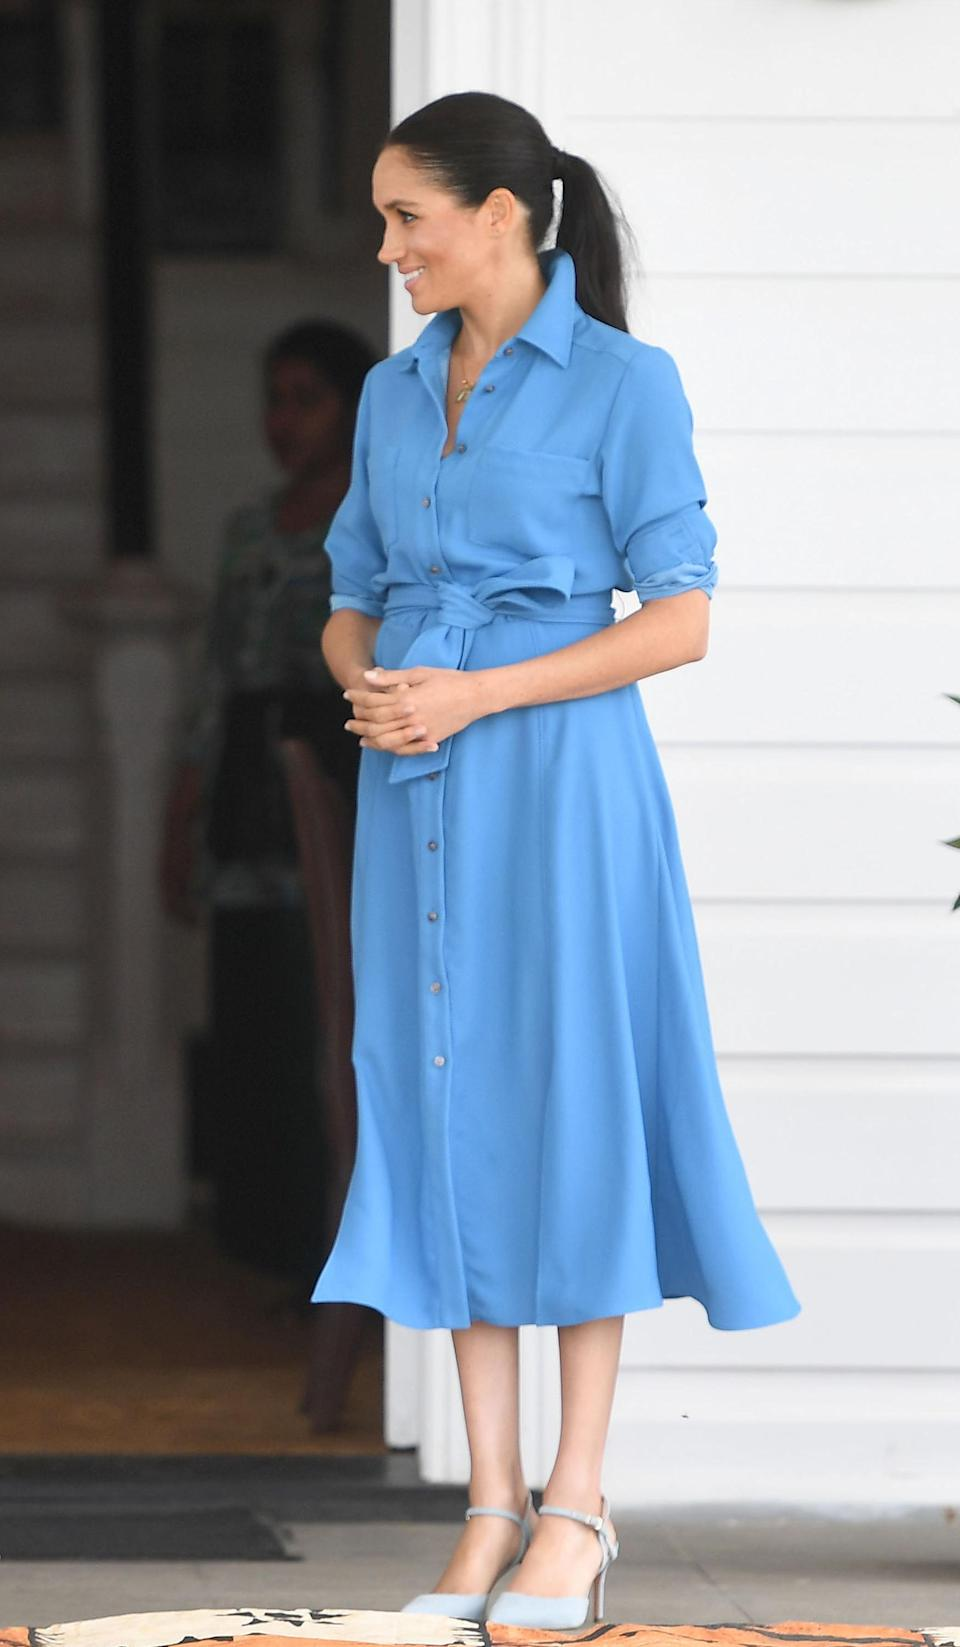 <p>On October 26, the Duchess of Sussex wore a $595 (approx £465) Veronica Beard shirt dress for a trip to Tupou College and Toloa rainforest. She teamed the maternity look with Aquazurra heels – which promptly sold out online. <em>[Photo: Getty]</em> </p>